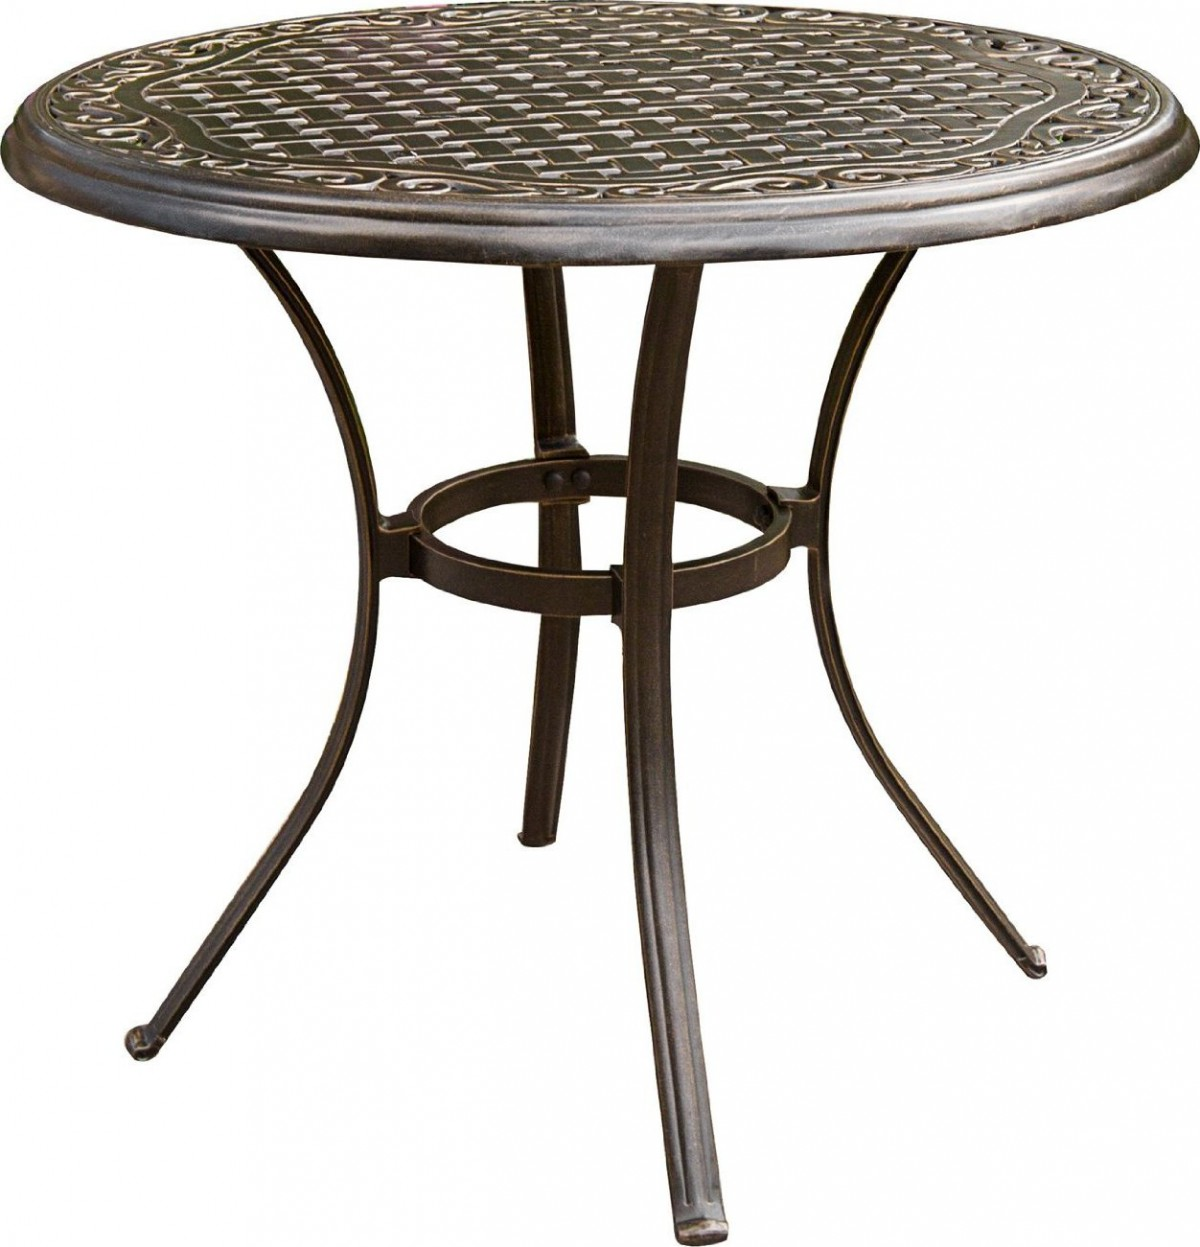 patio bistro table and chairs white wicker outdoor hanover traditions 3 piece set with